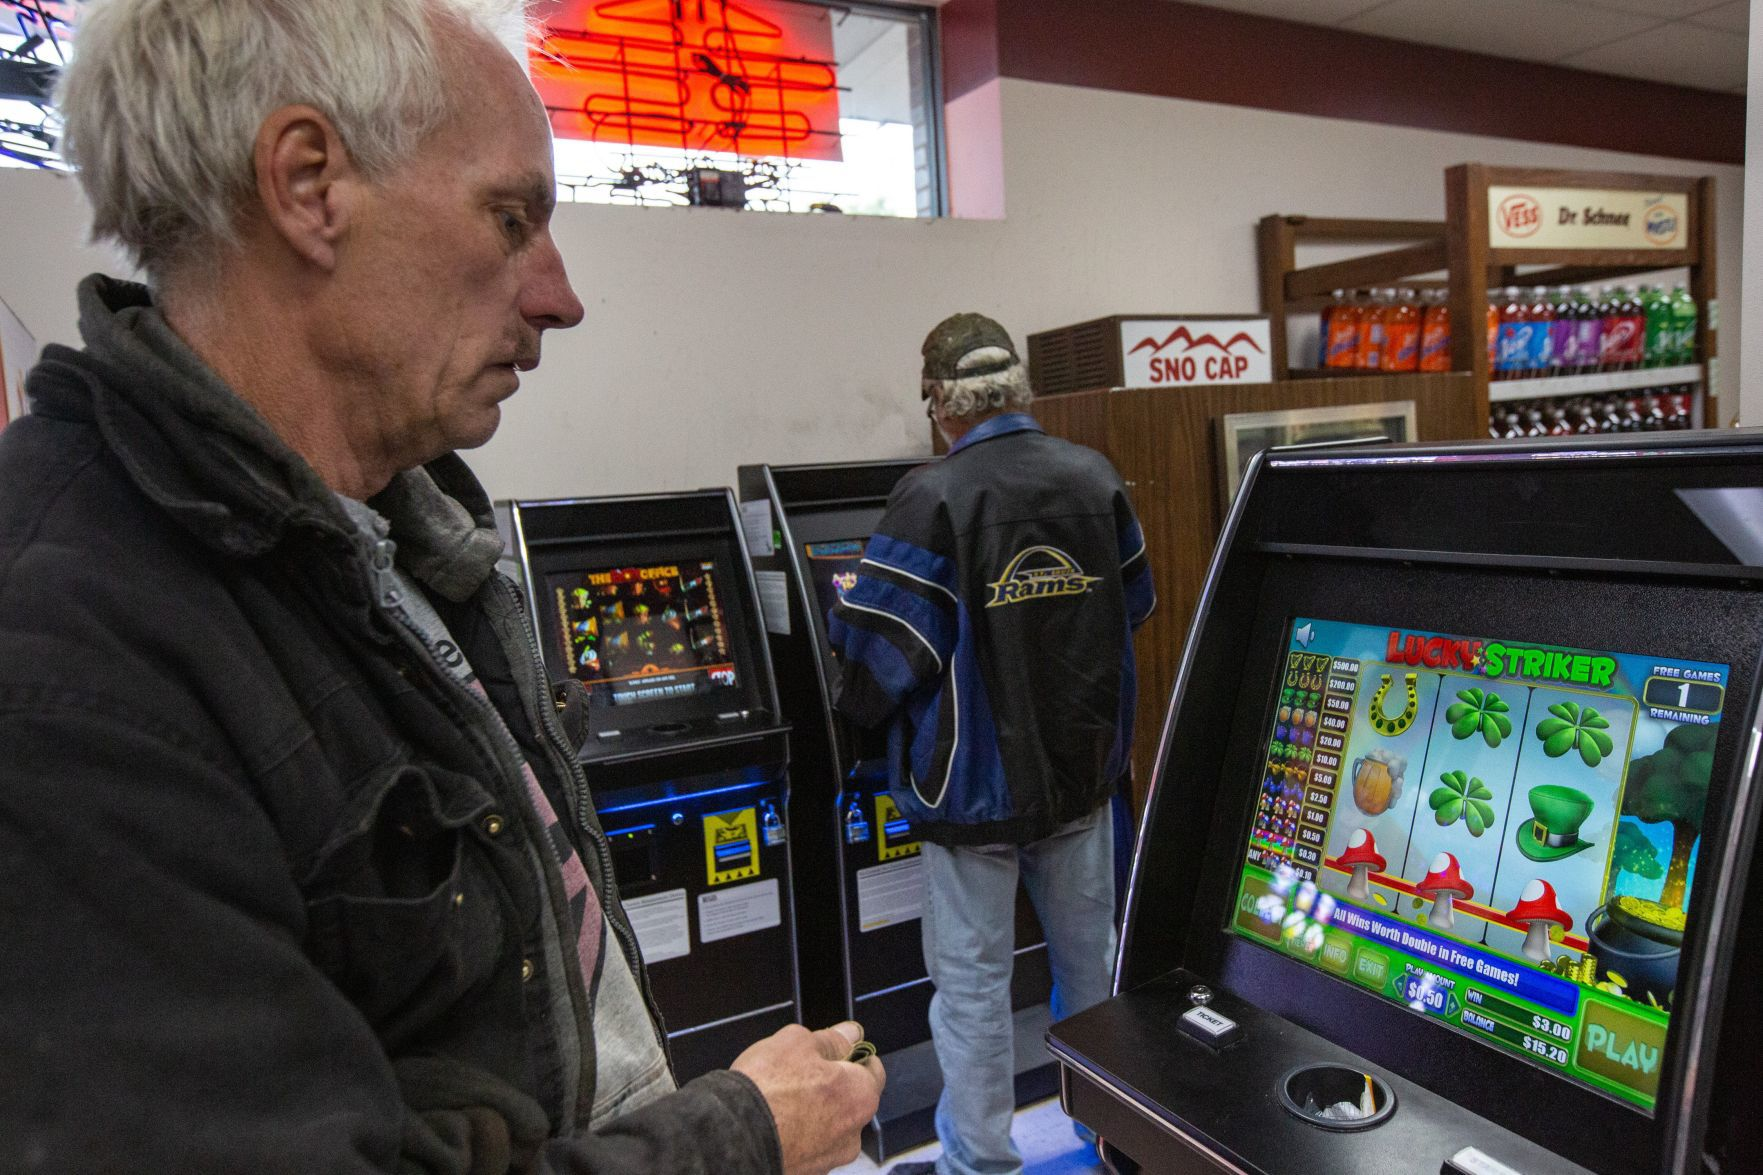 Missouri Governor S Stance On Gambling At Odds With Highway Patrol Politics Stltoday Com